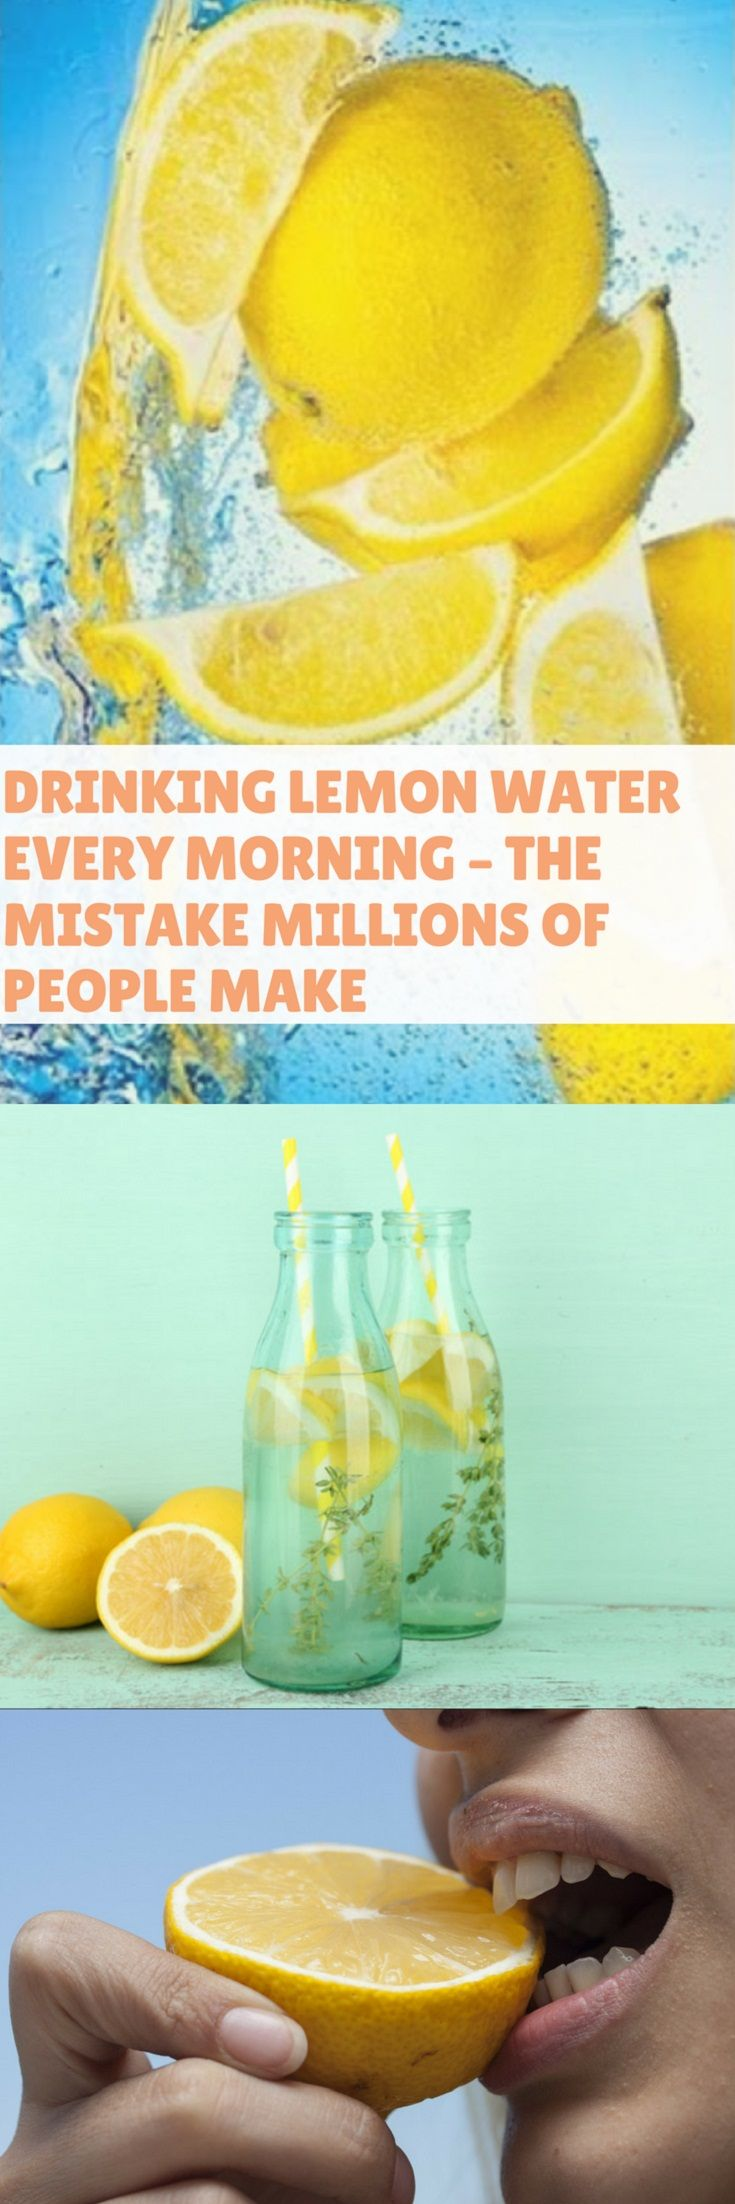 Drinking Lemon Water Every Morning – The Mistake M… #Health #Wellness #Fitness #Tips #Food #Motivation #Remedies #Natural #Mental #Holistic #Skin #Woman's #Facts #Care #Lifestyle #Detox #Beauty #Diet #Body #Nutricion #Skincare #NaturalTreatments #HealthyLifestyle